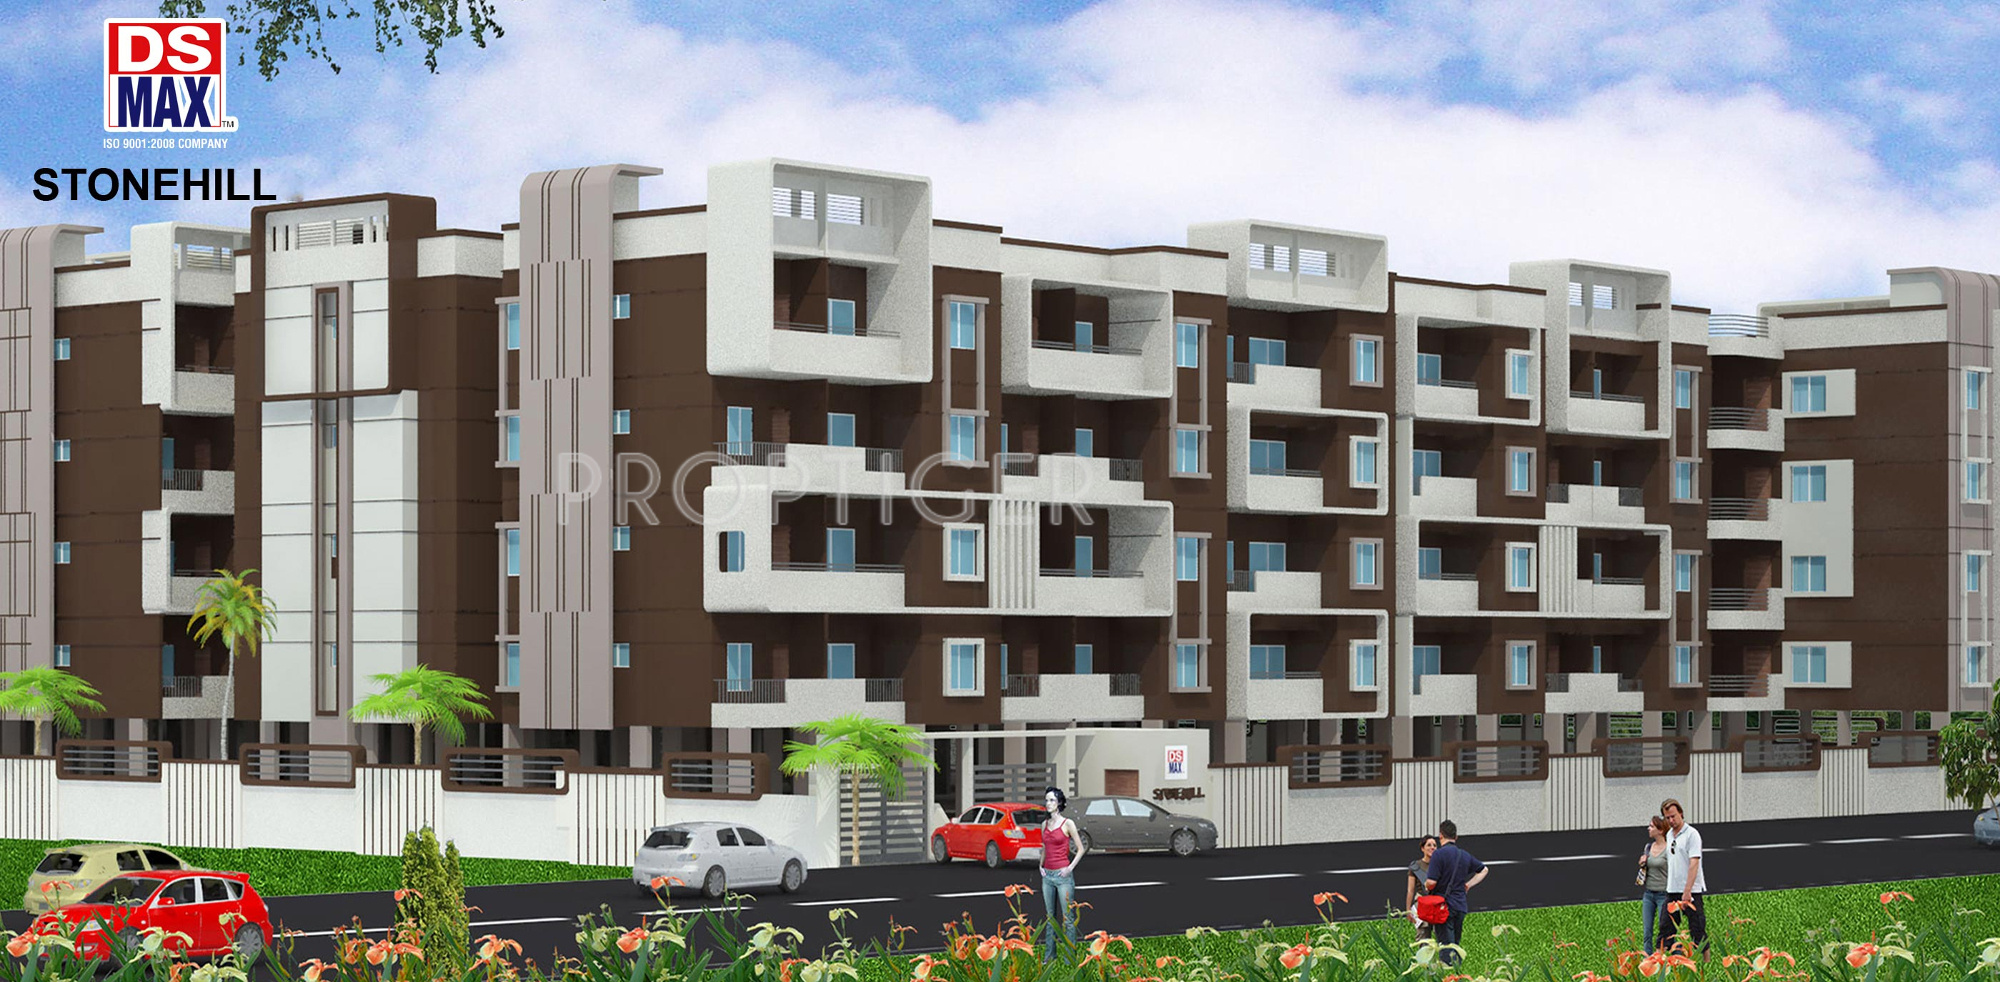 ds max stonehill in anjanapura bangalore price location map gallery